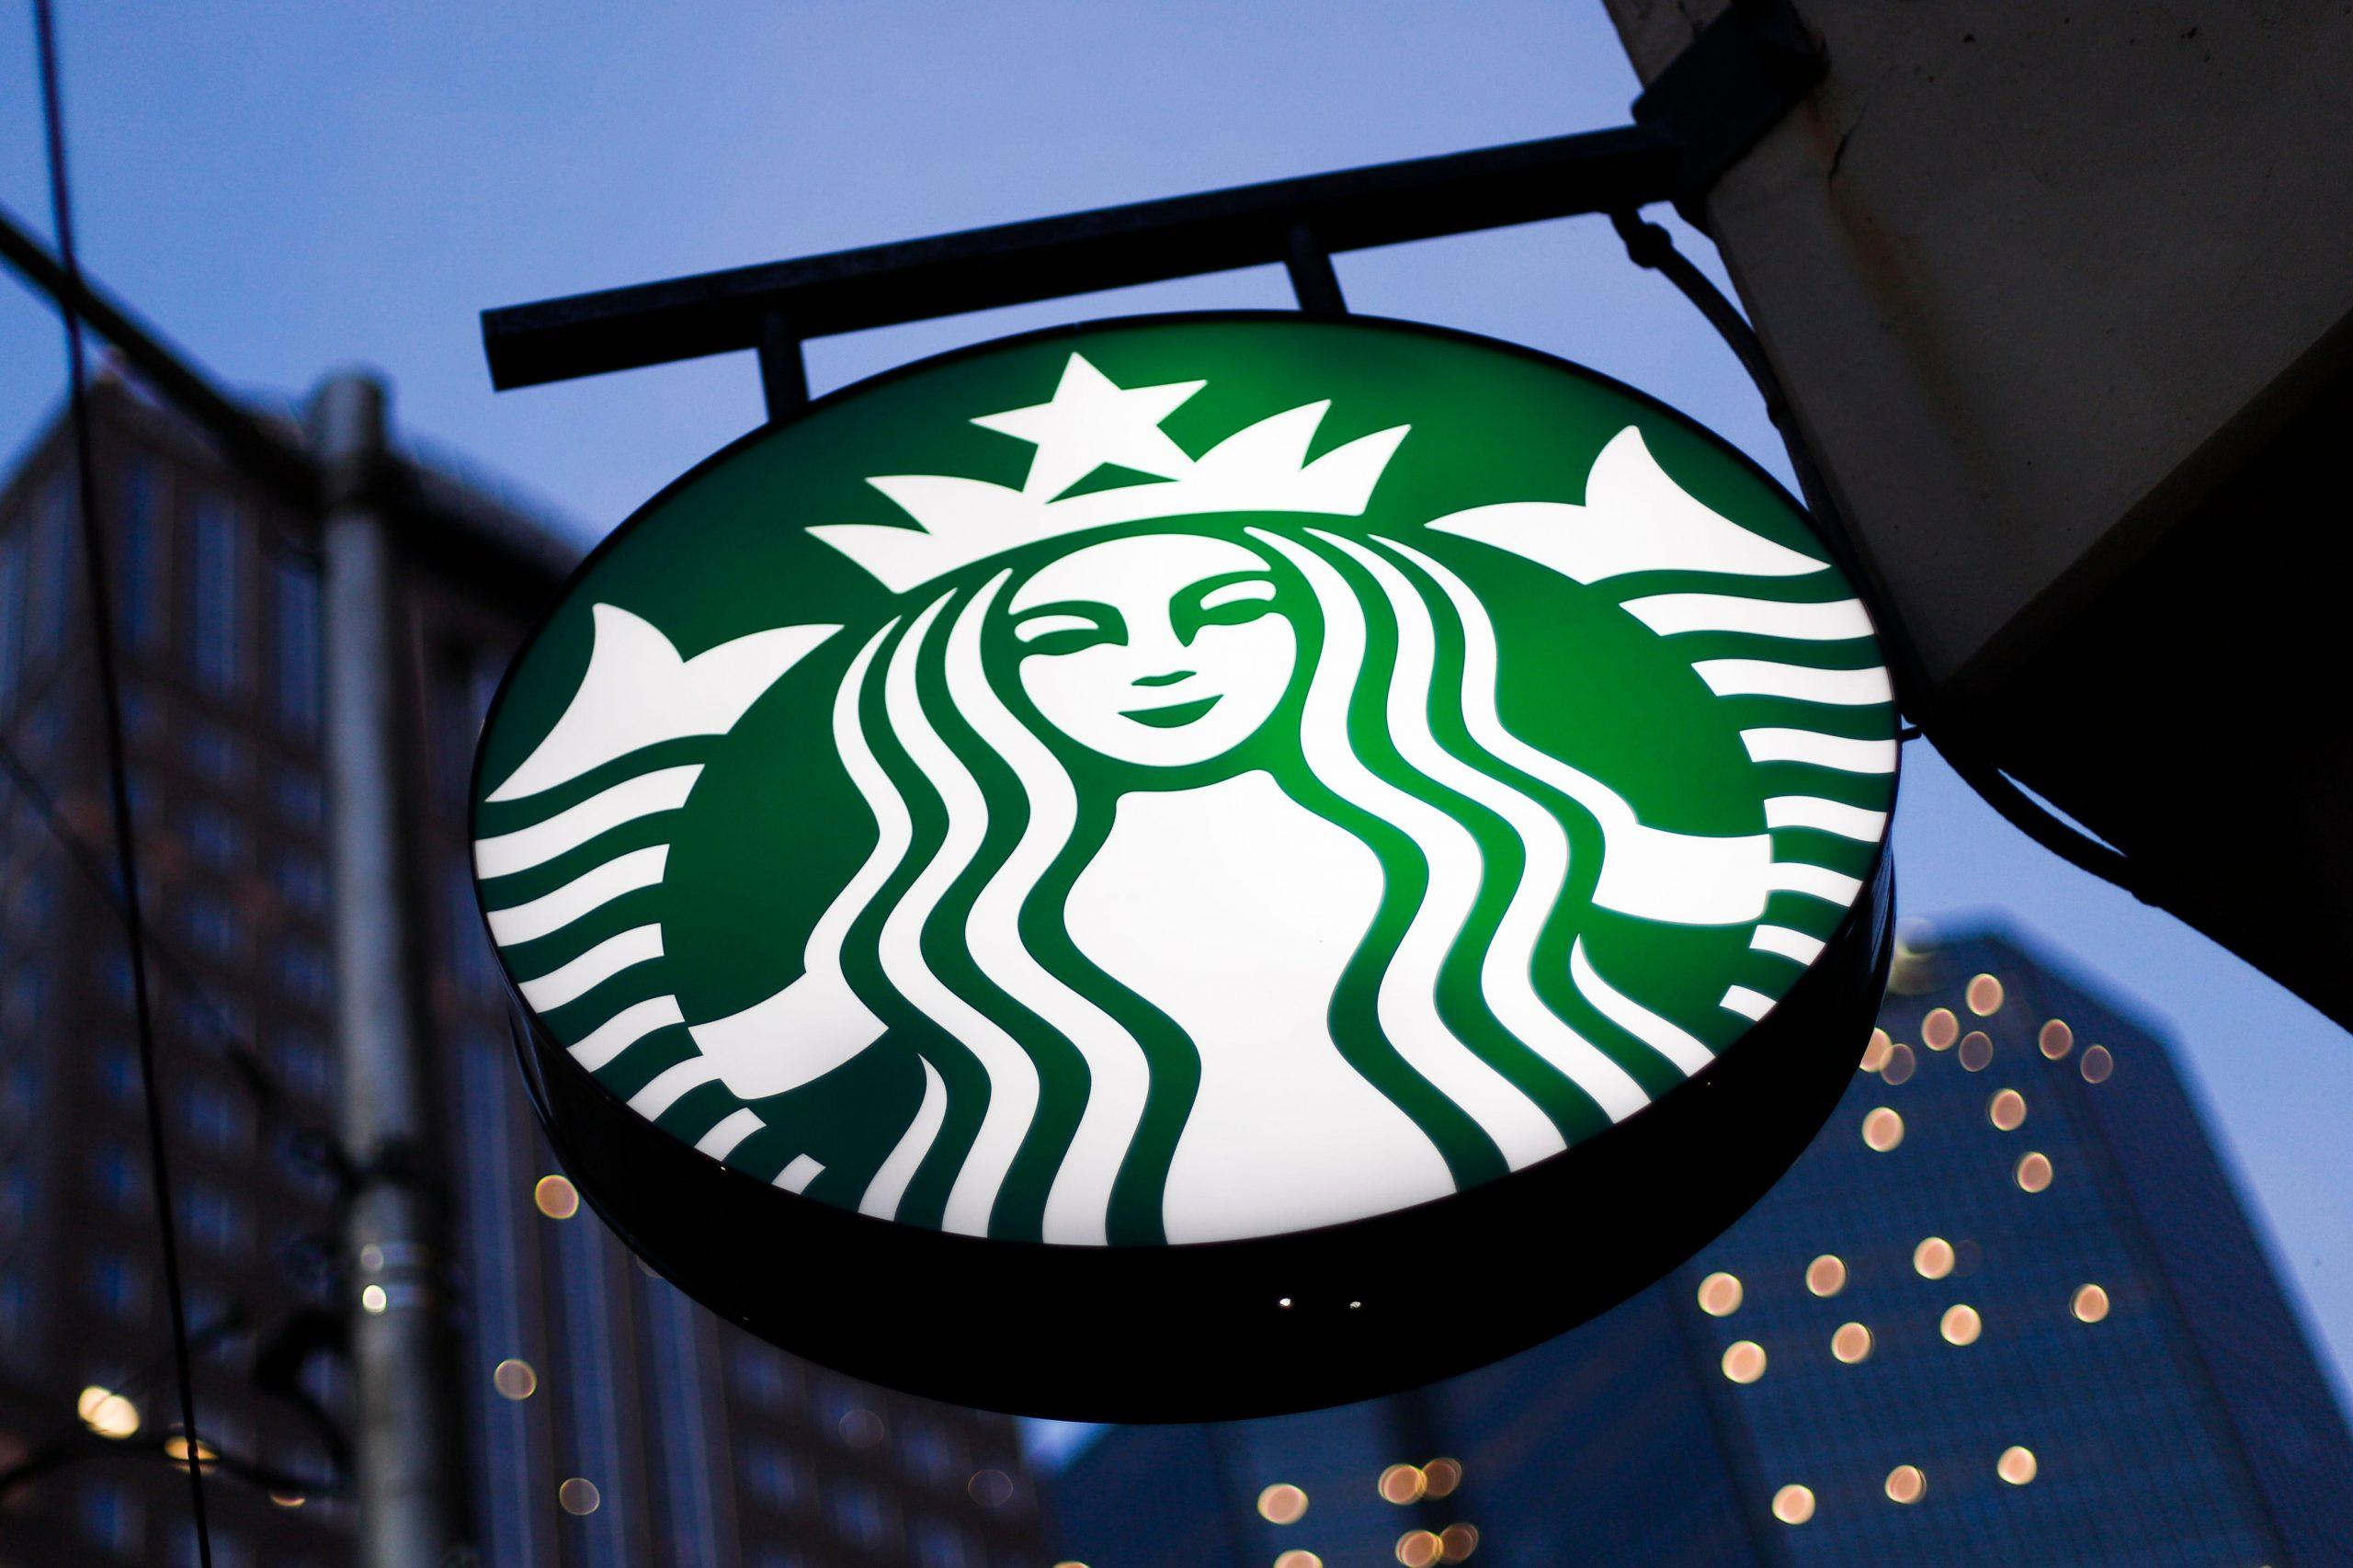 Starbucks shortage: Menu options such as oat milk and other items in short supply